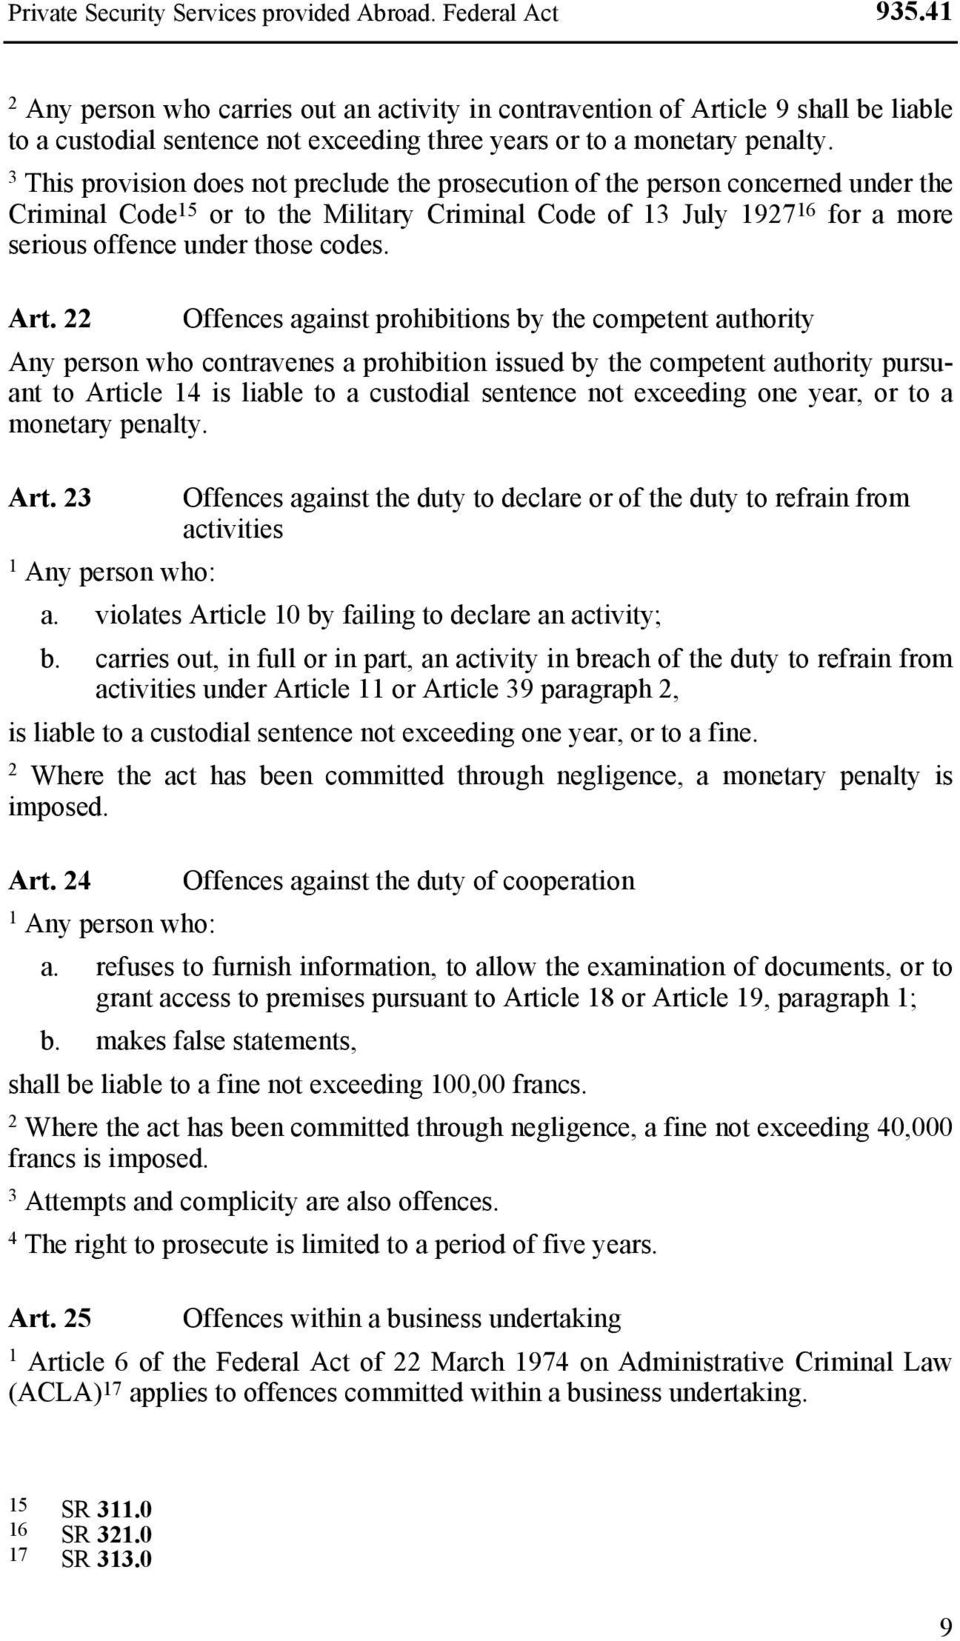 This provision does not preclude the prosecution of the person concerned under the Criminal Code 5 or to the Military Criminal Code of July 97 6 for a more serious offence under those codes. Art.